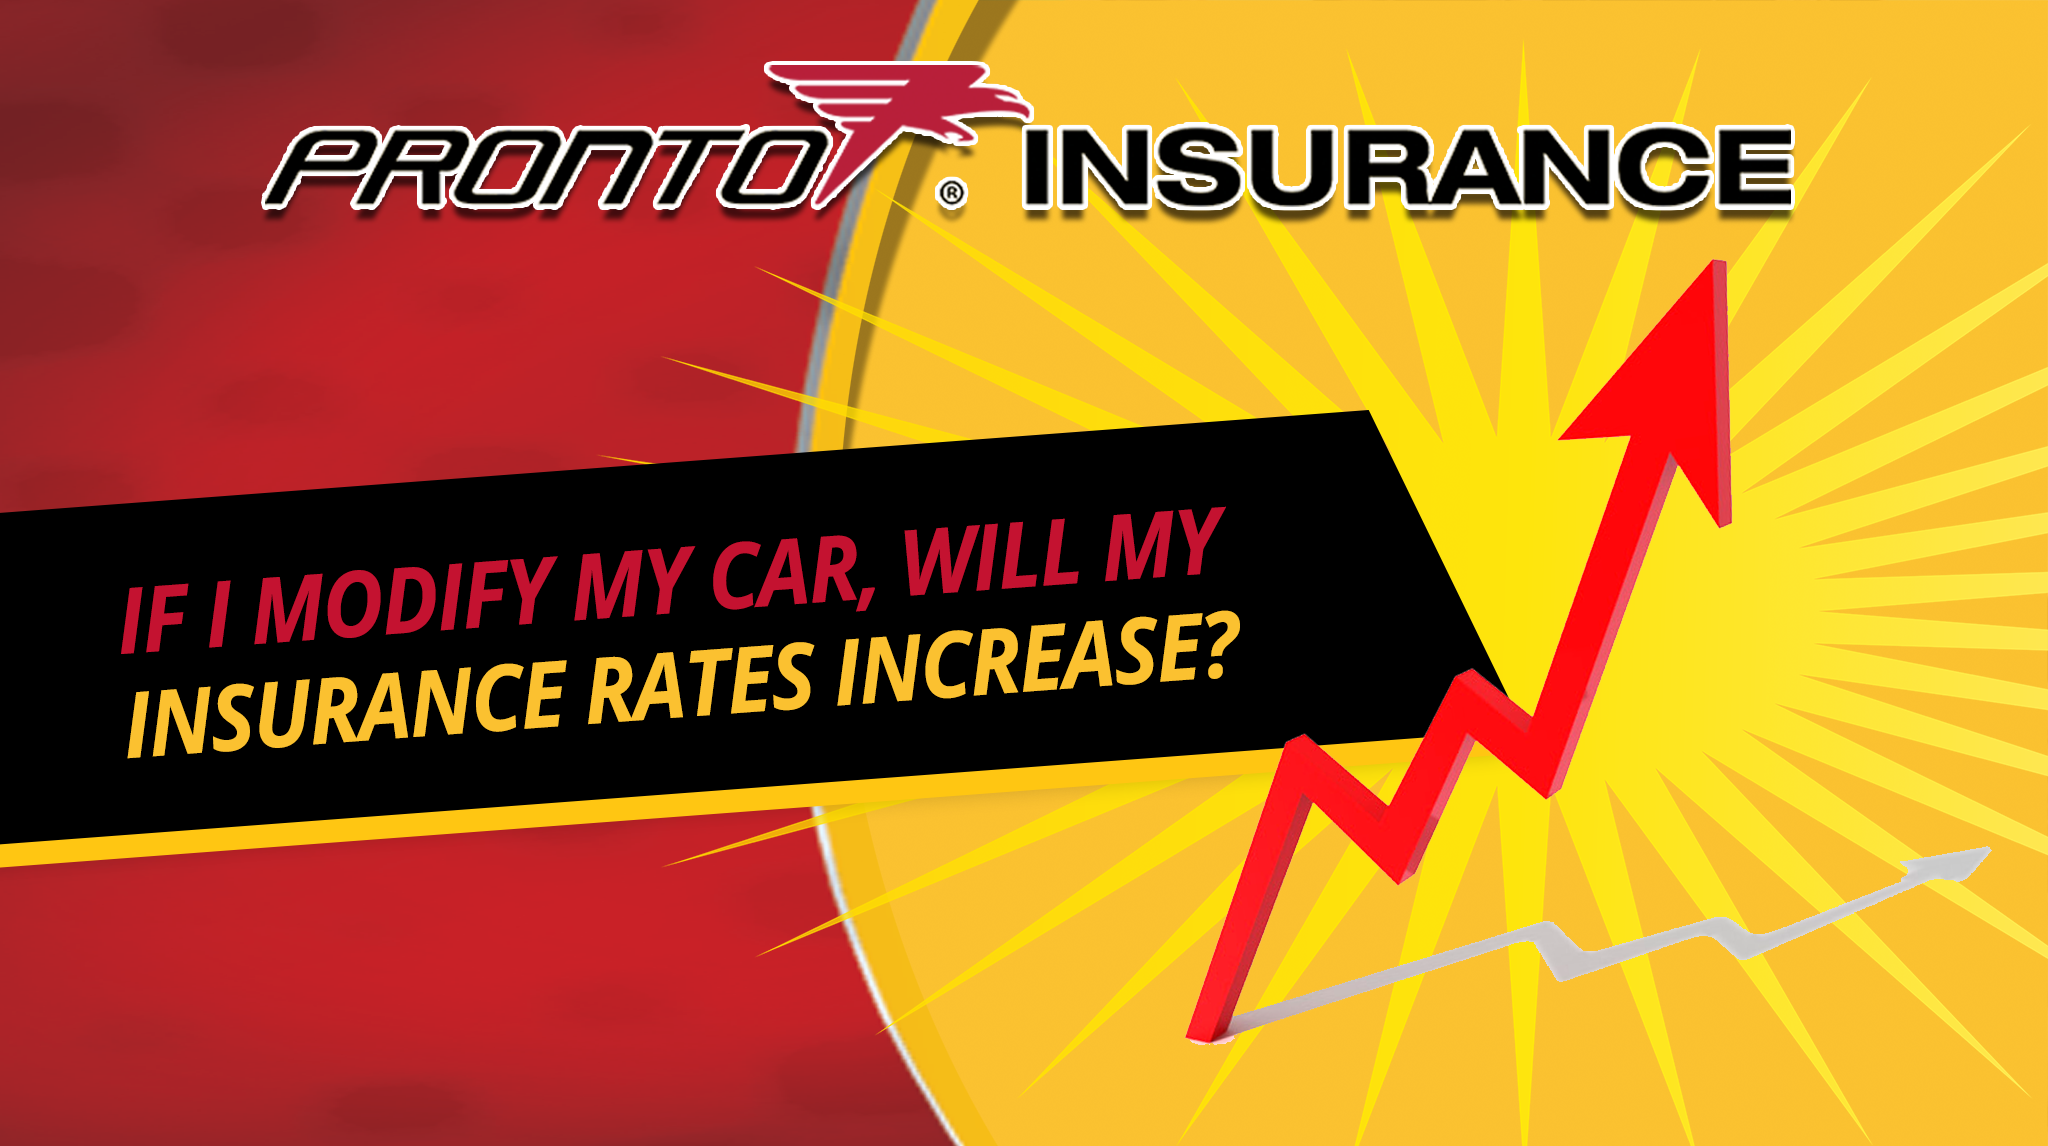 If I Modify My Car, Will My Insurance Rates Increase?